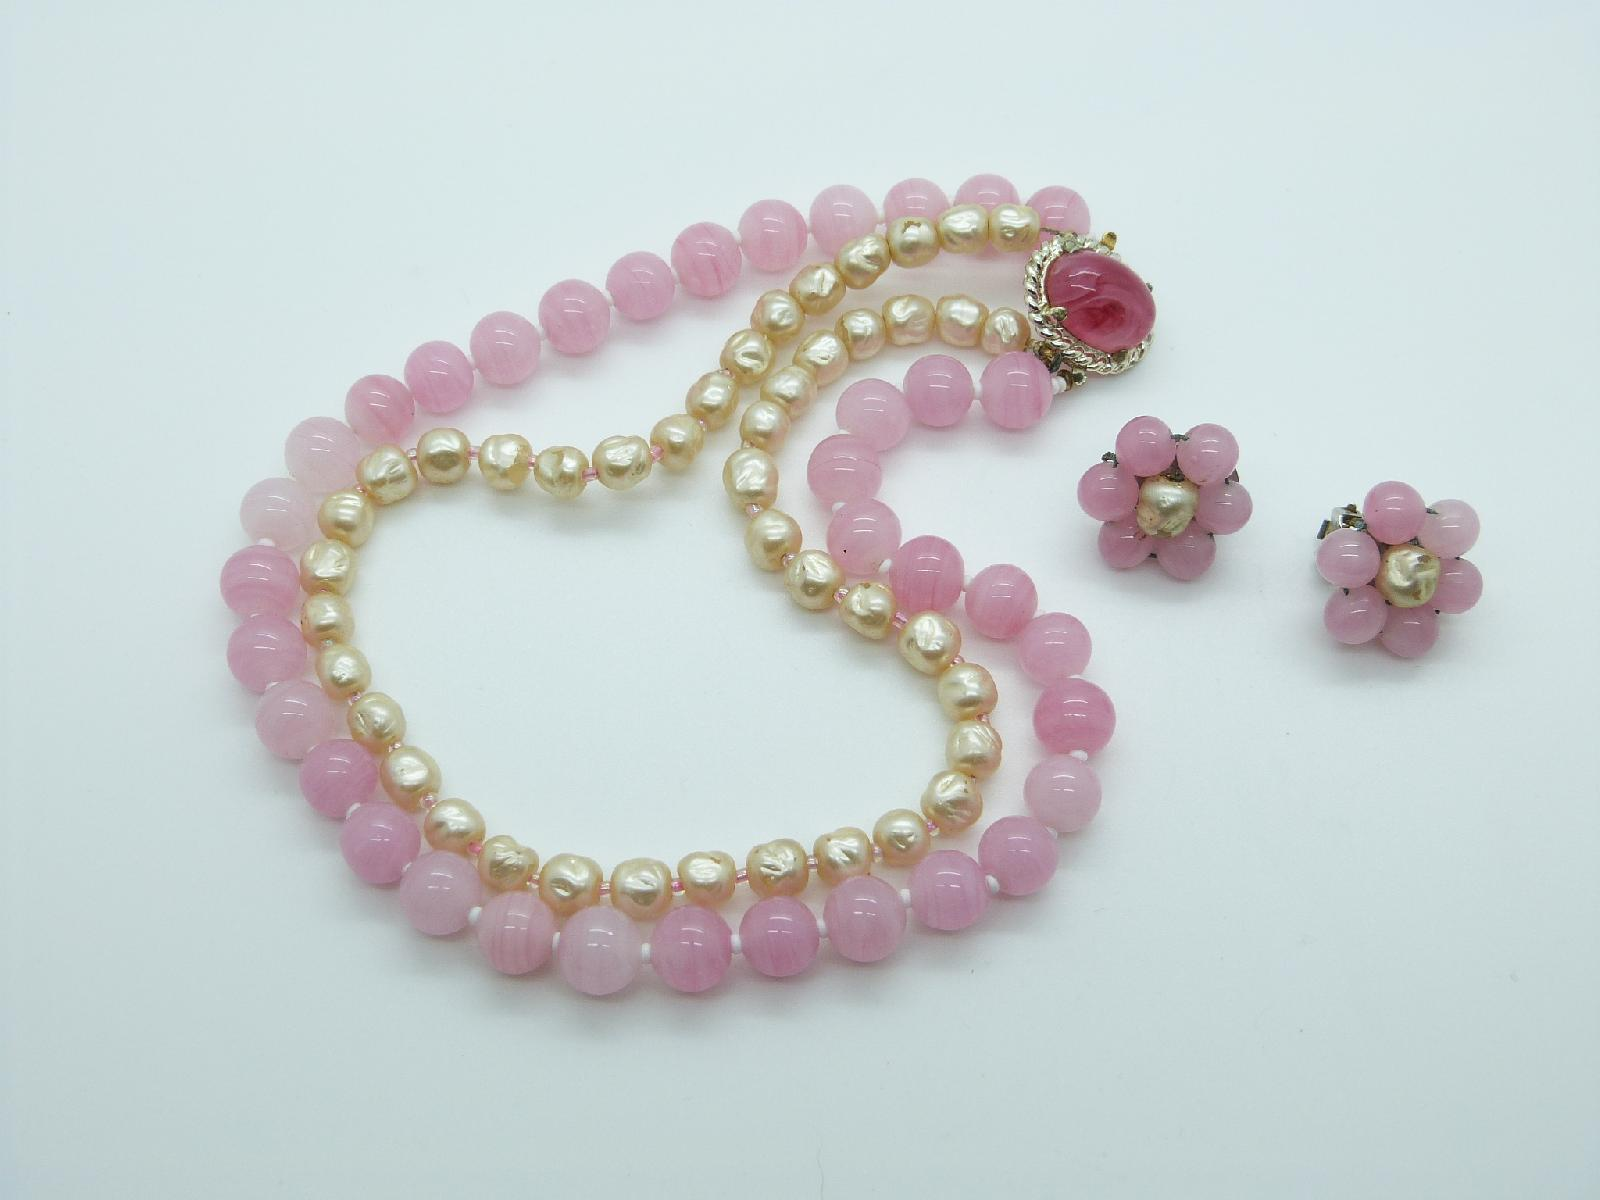 Vintage 50s Two Row Pink Glass and  Faux Pearl Bead Necklace and Earrings